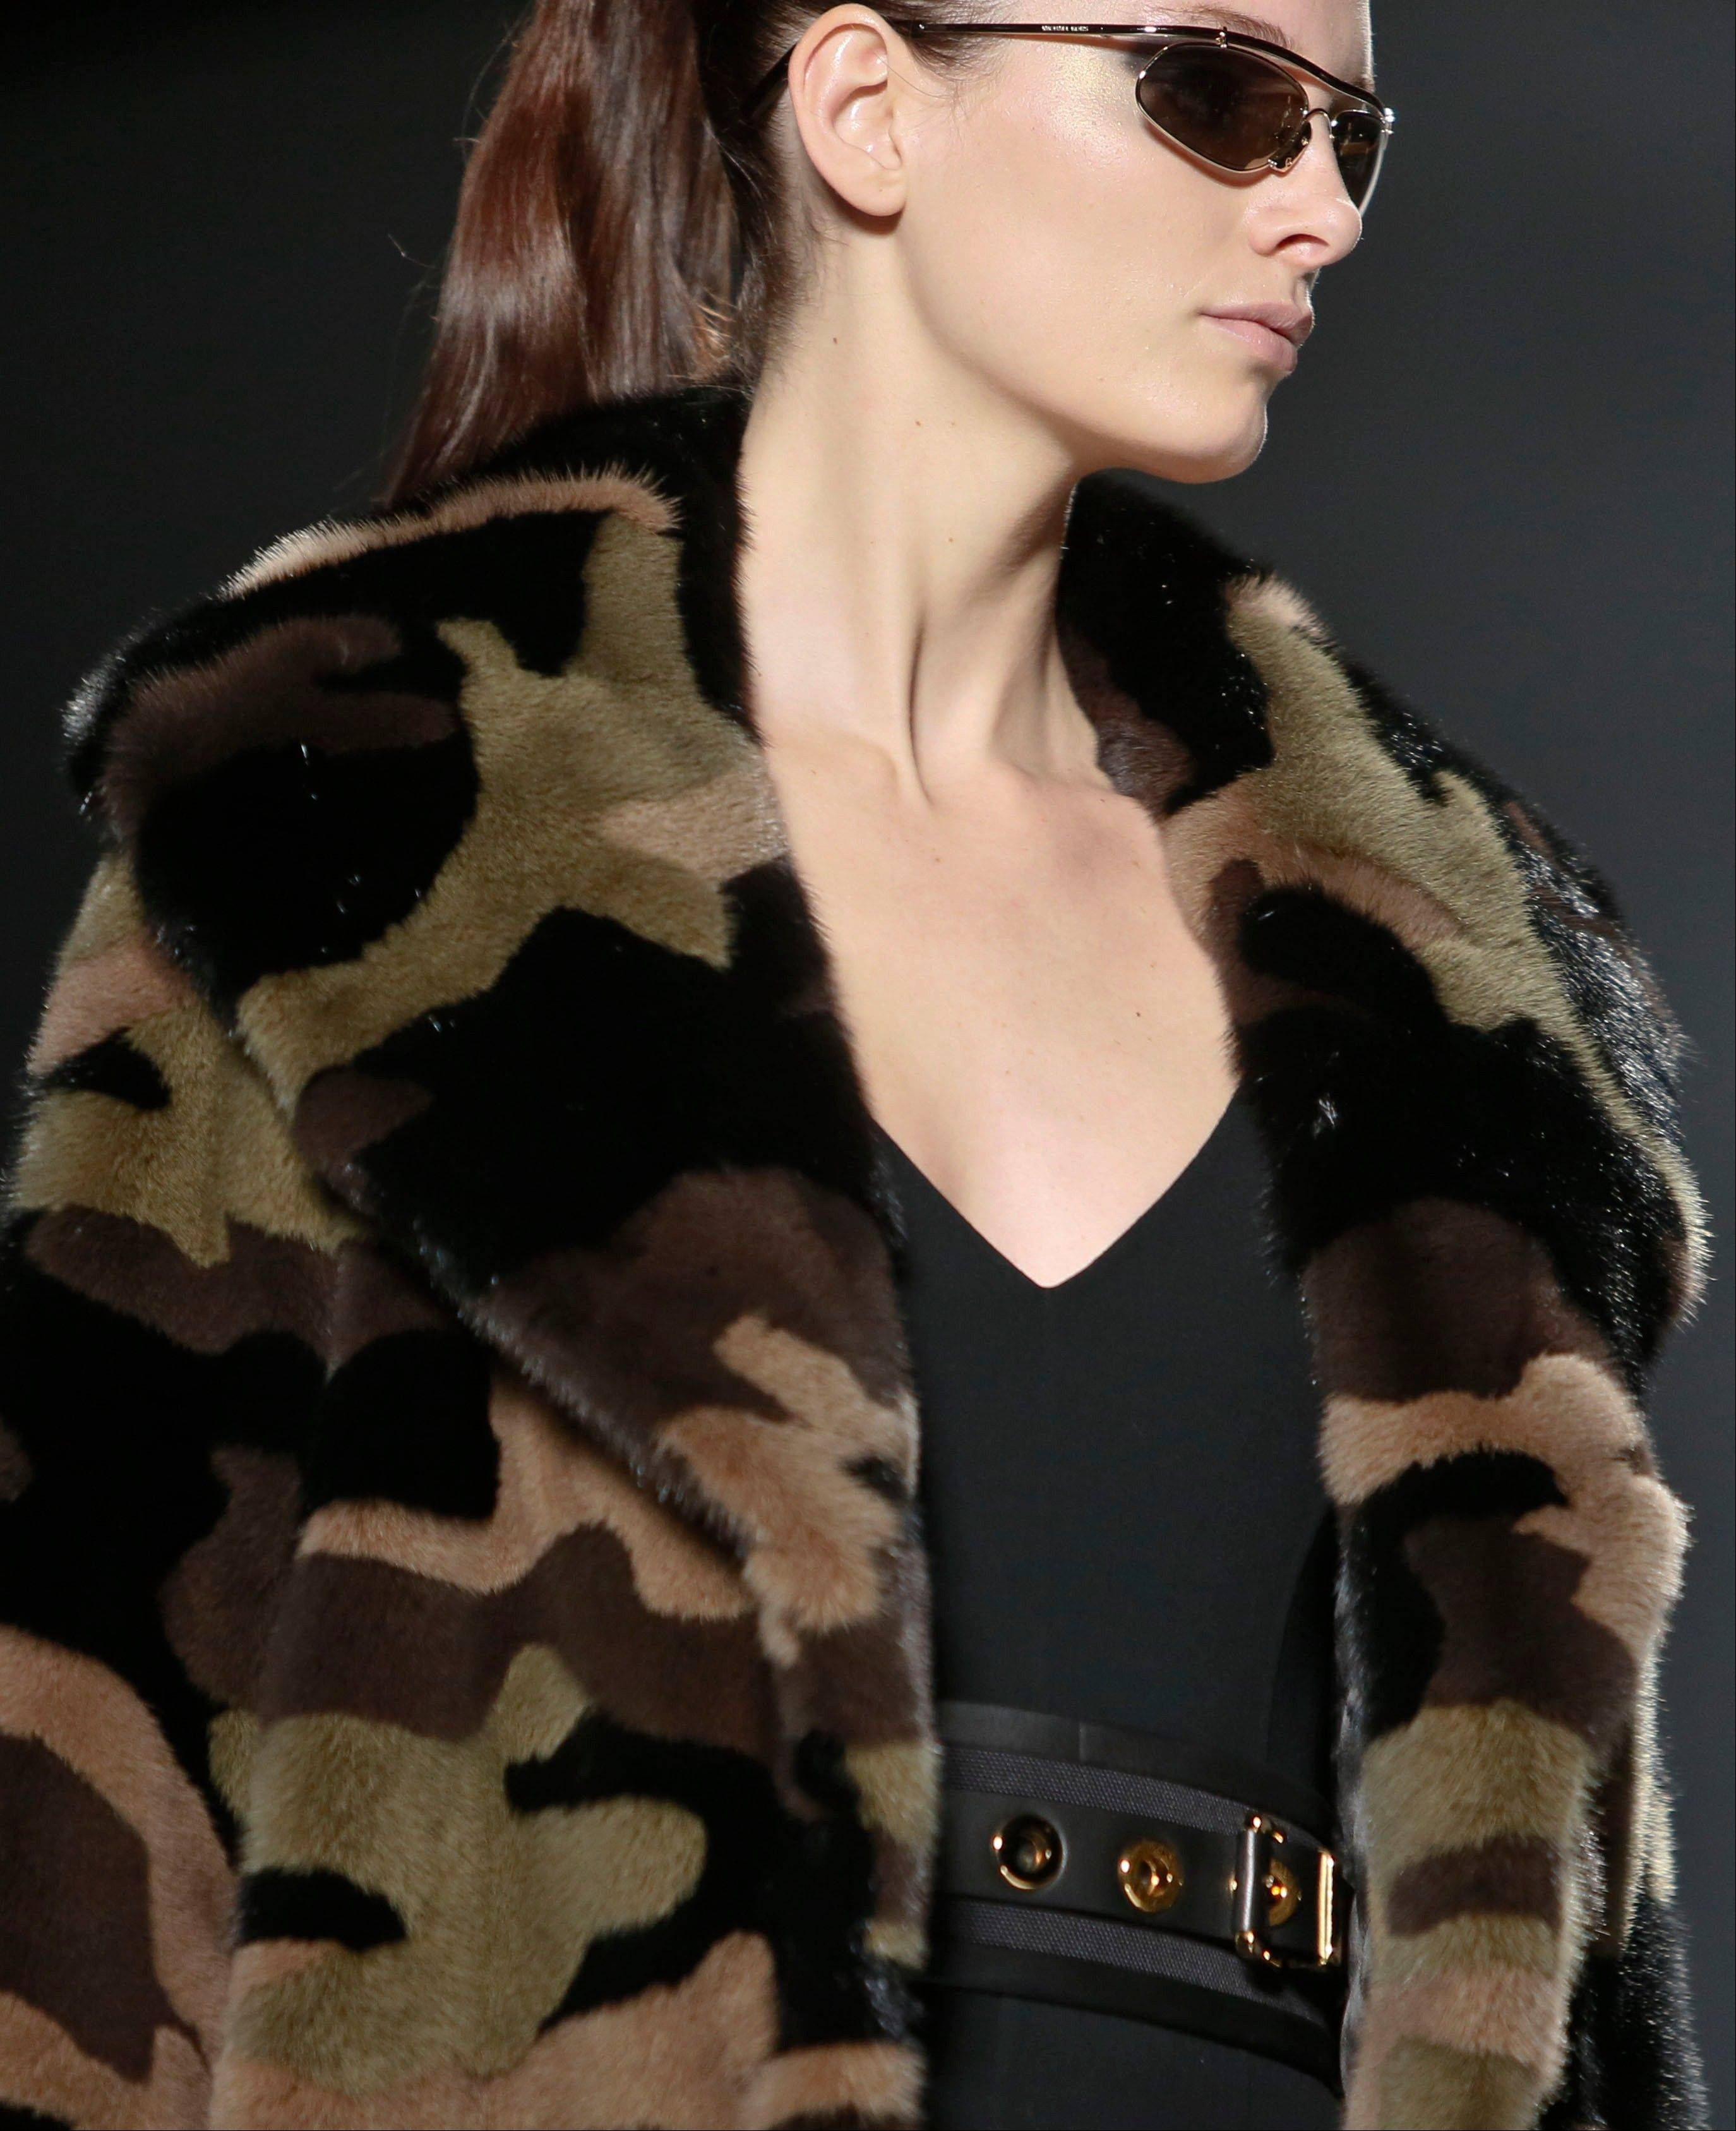 The print that at one time was only a tool for military troops to go unnoticed has become a front-and-center look in fashion, such as this camouflage fur coat from the Michael Kors Fall 2013 collection.